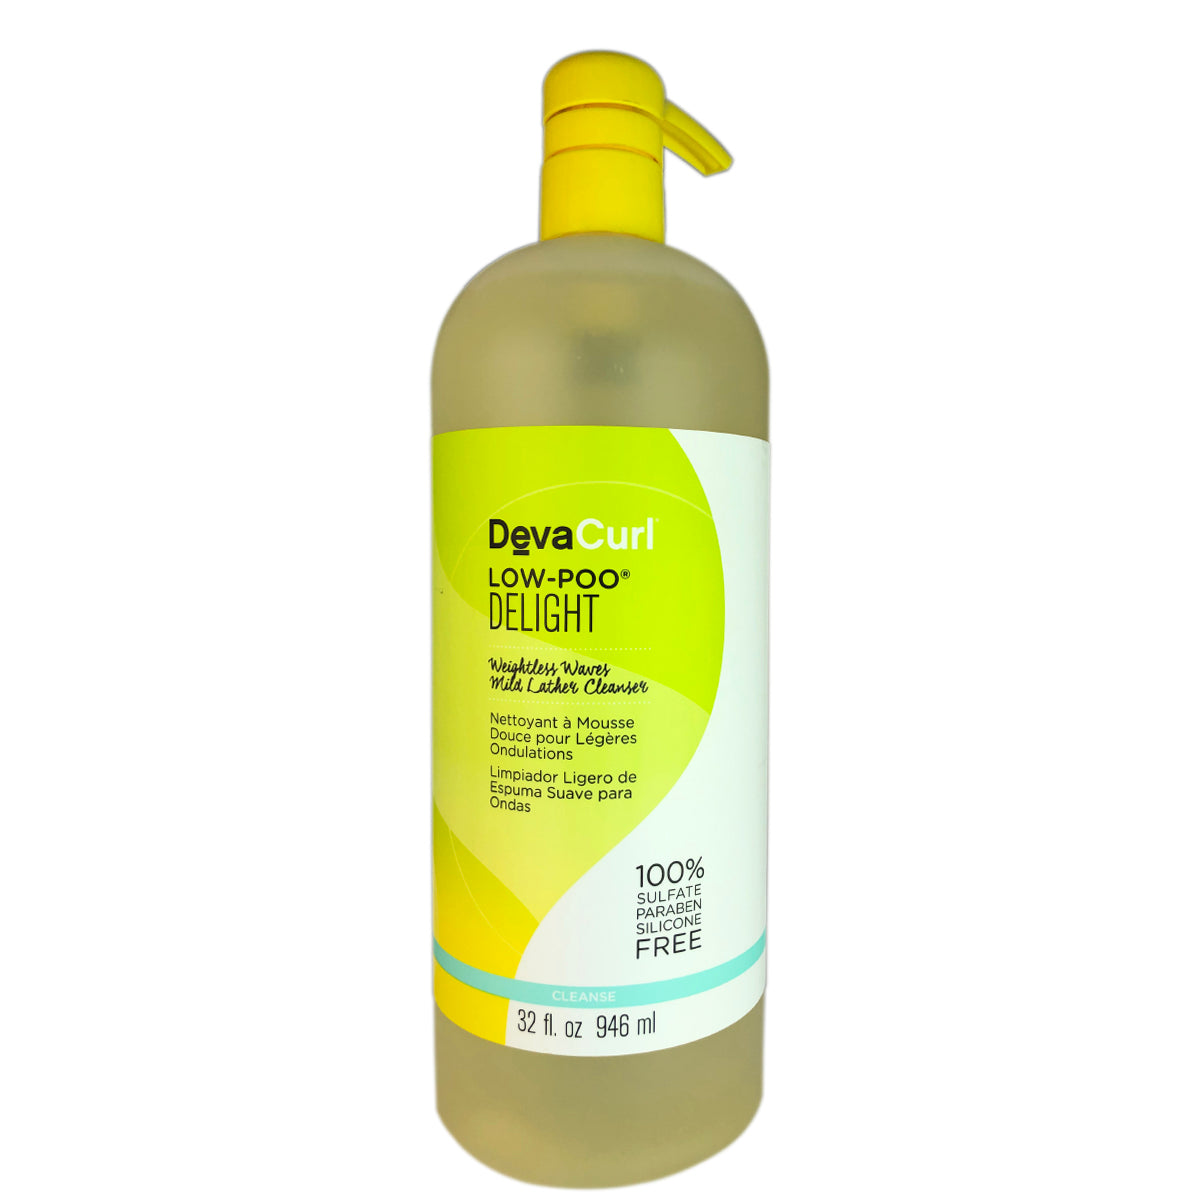 DevaCurl Low-Poo Delight Weightless Waves Mild Lather Hair Cleanser 32 oz